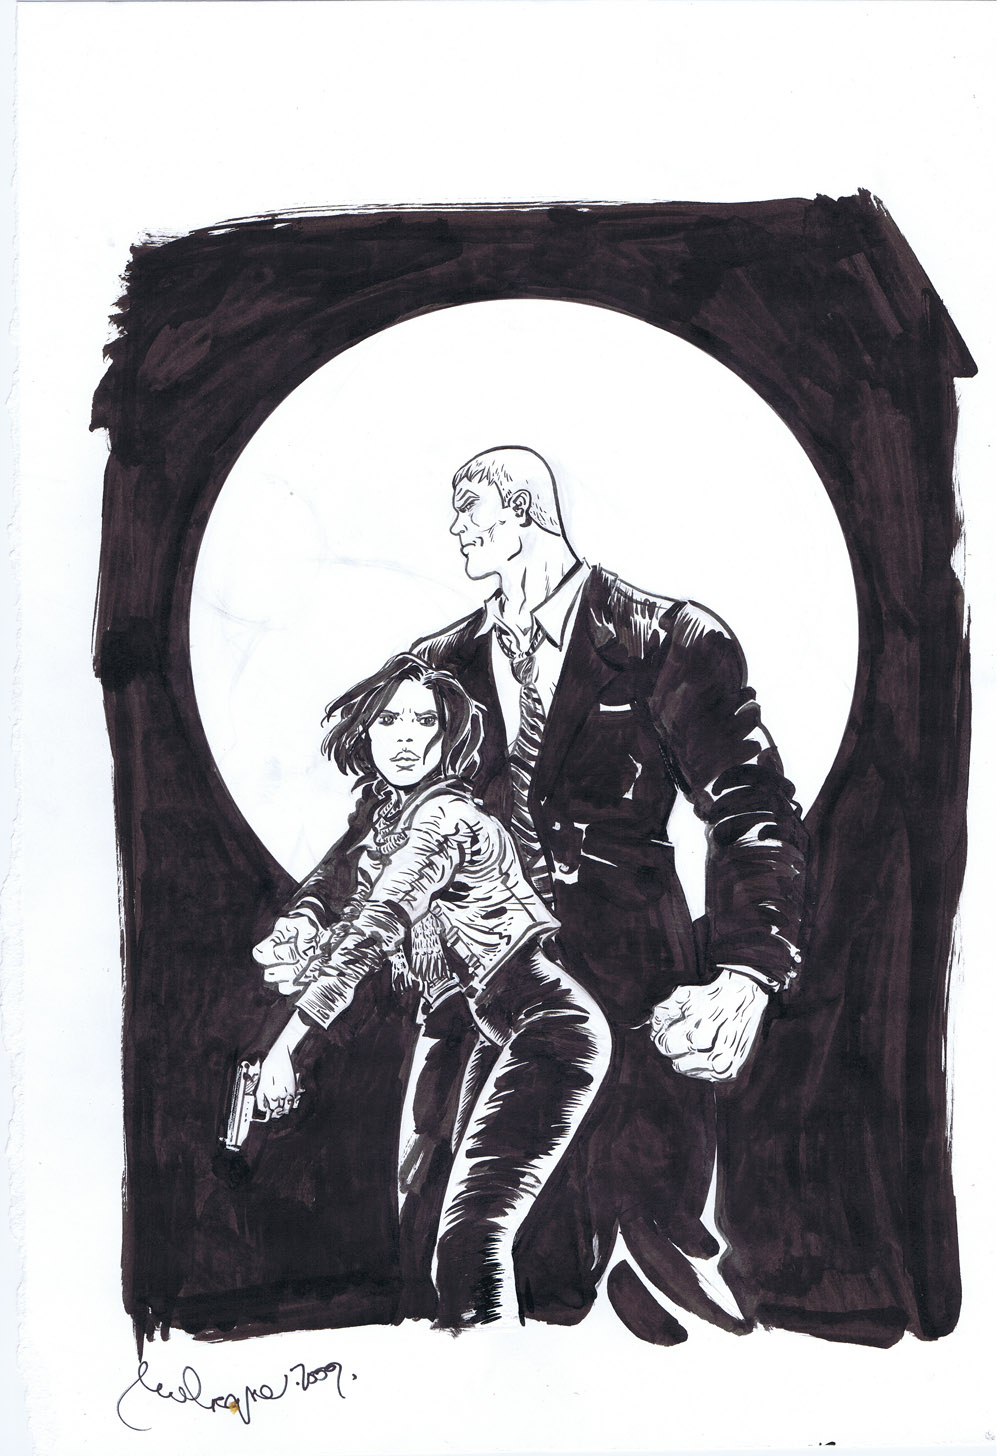 The Unknown, Issue 1 cover